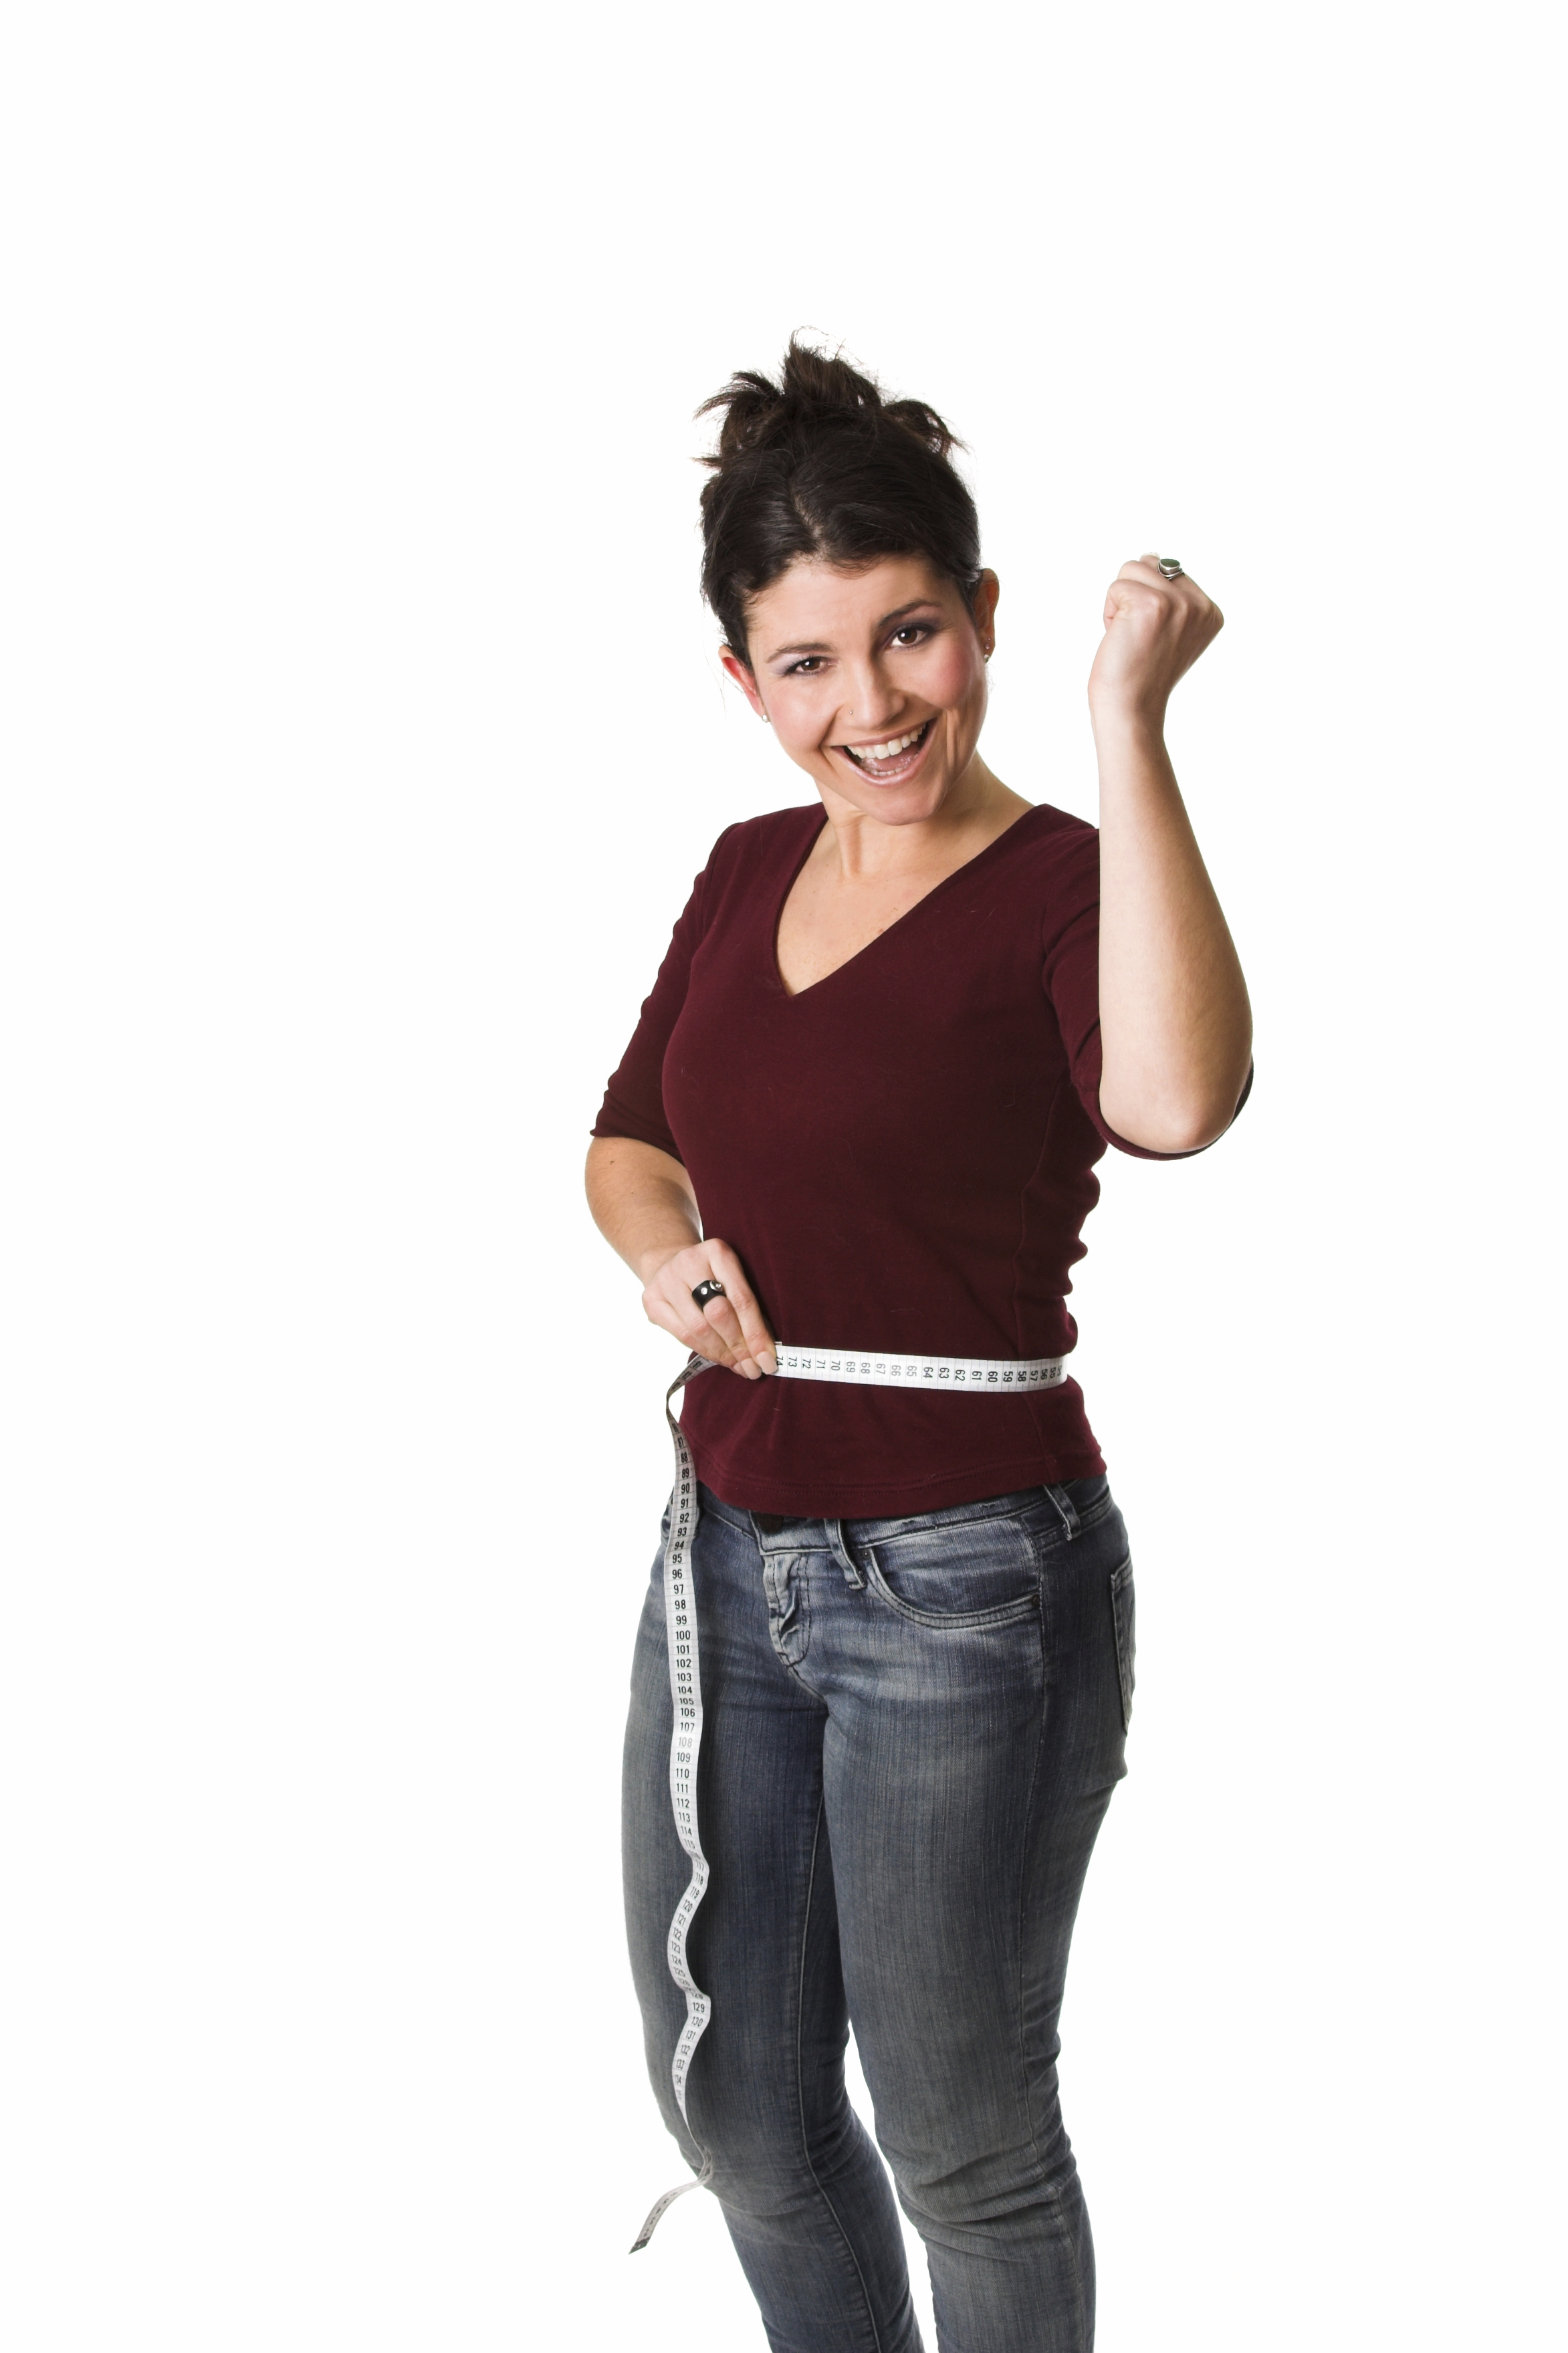 A Most Recent Breakdown Using Clear-Cut Weight Loss Methods iStock_000002553312_Large